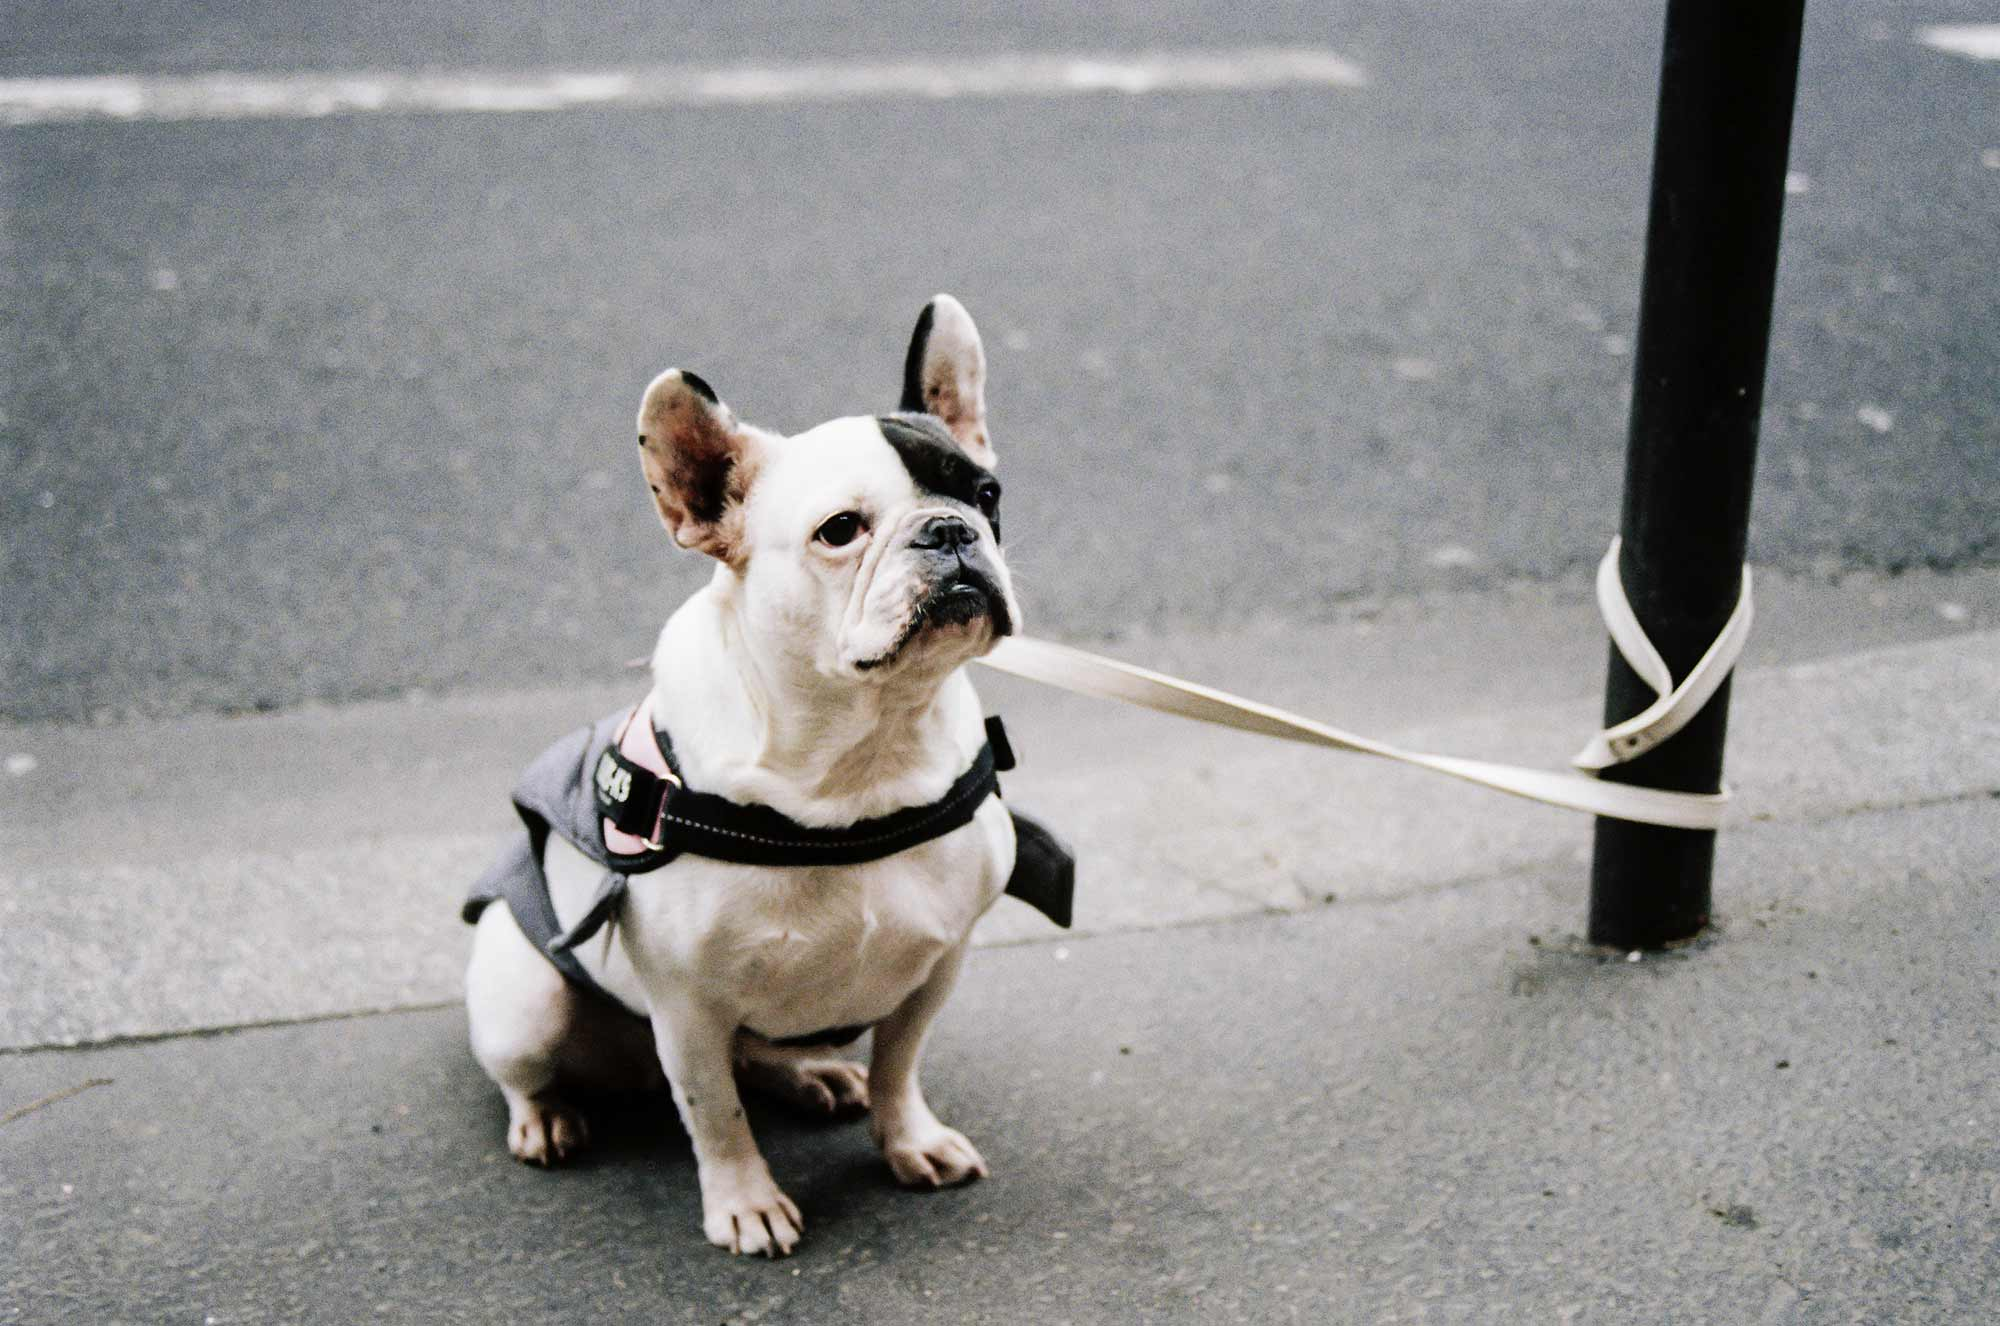 Adorable black-and-white French bulldog on a leash.